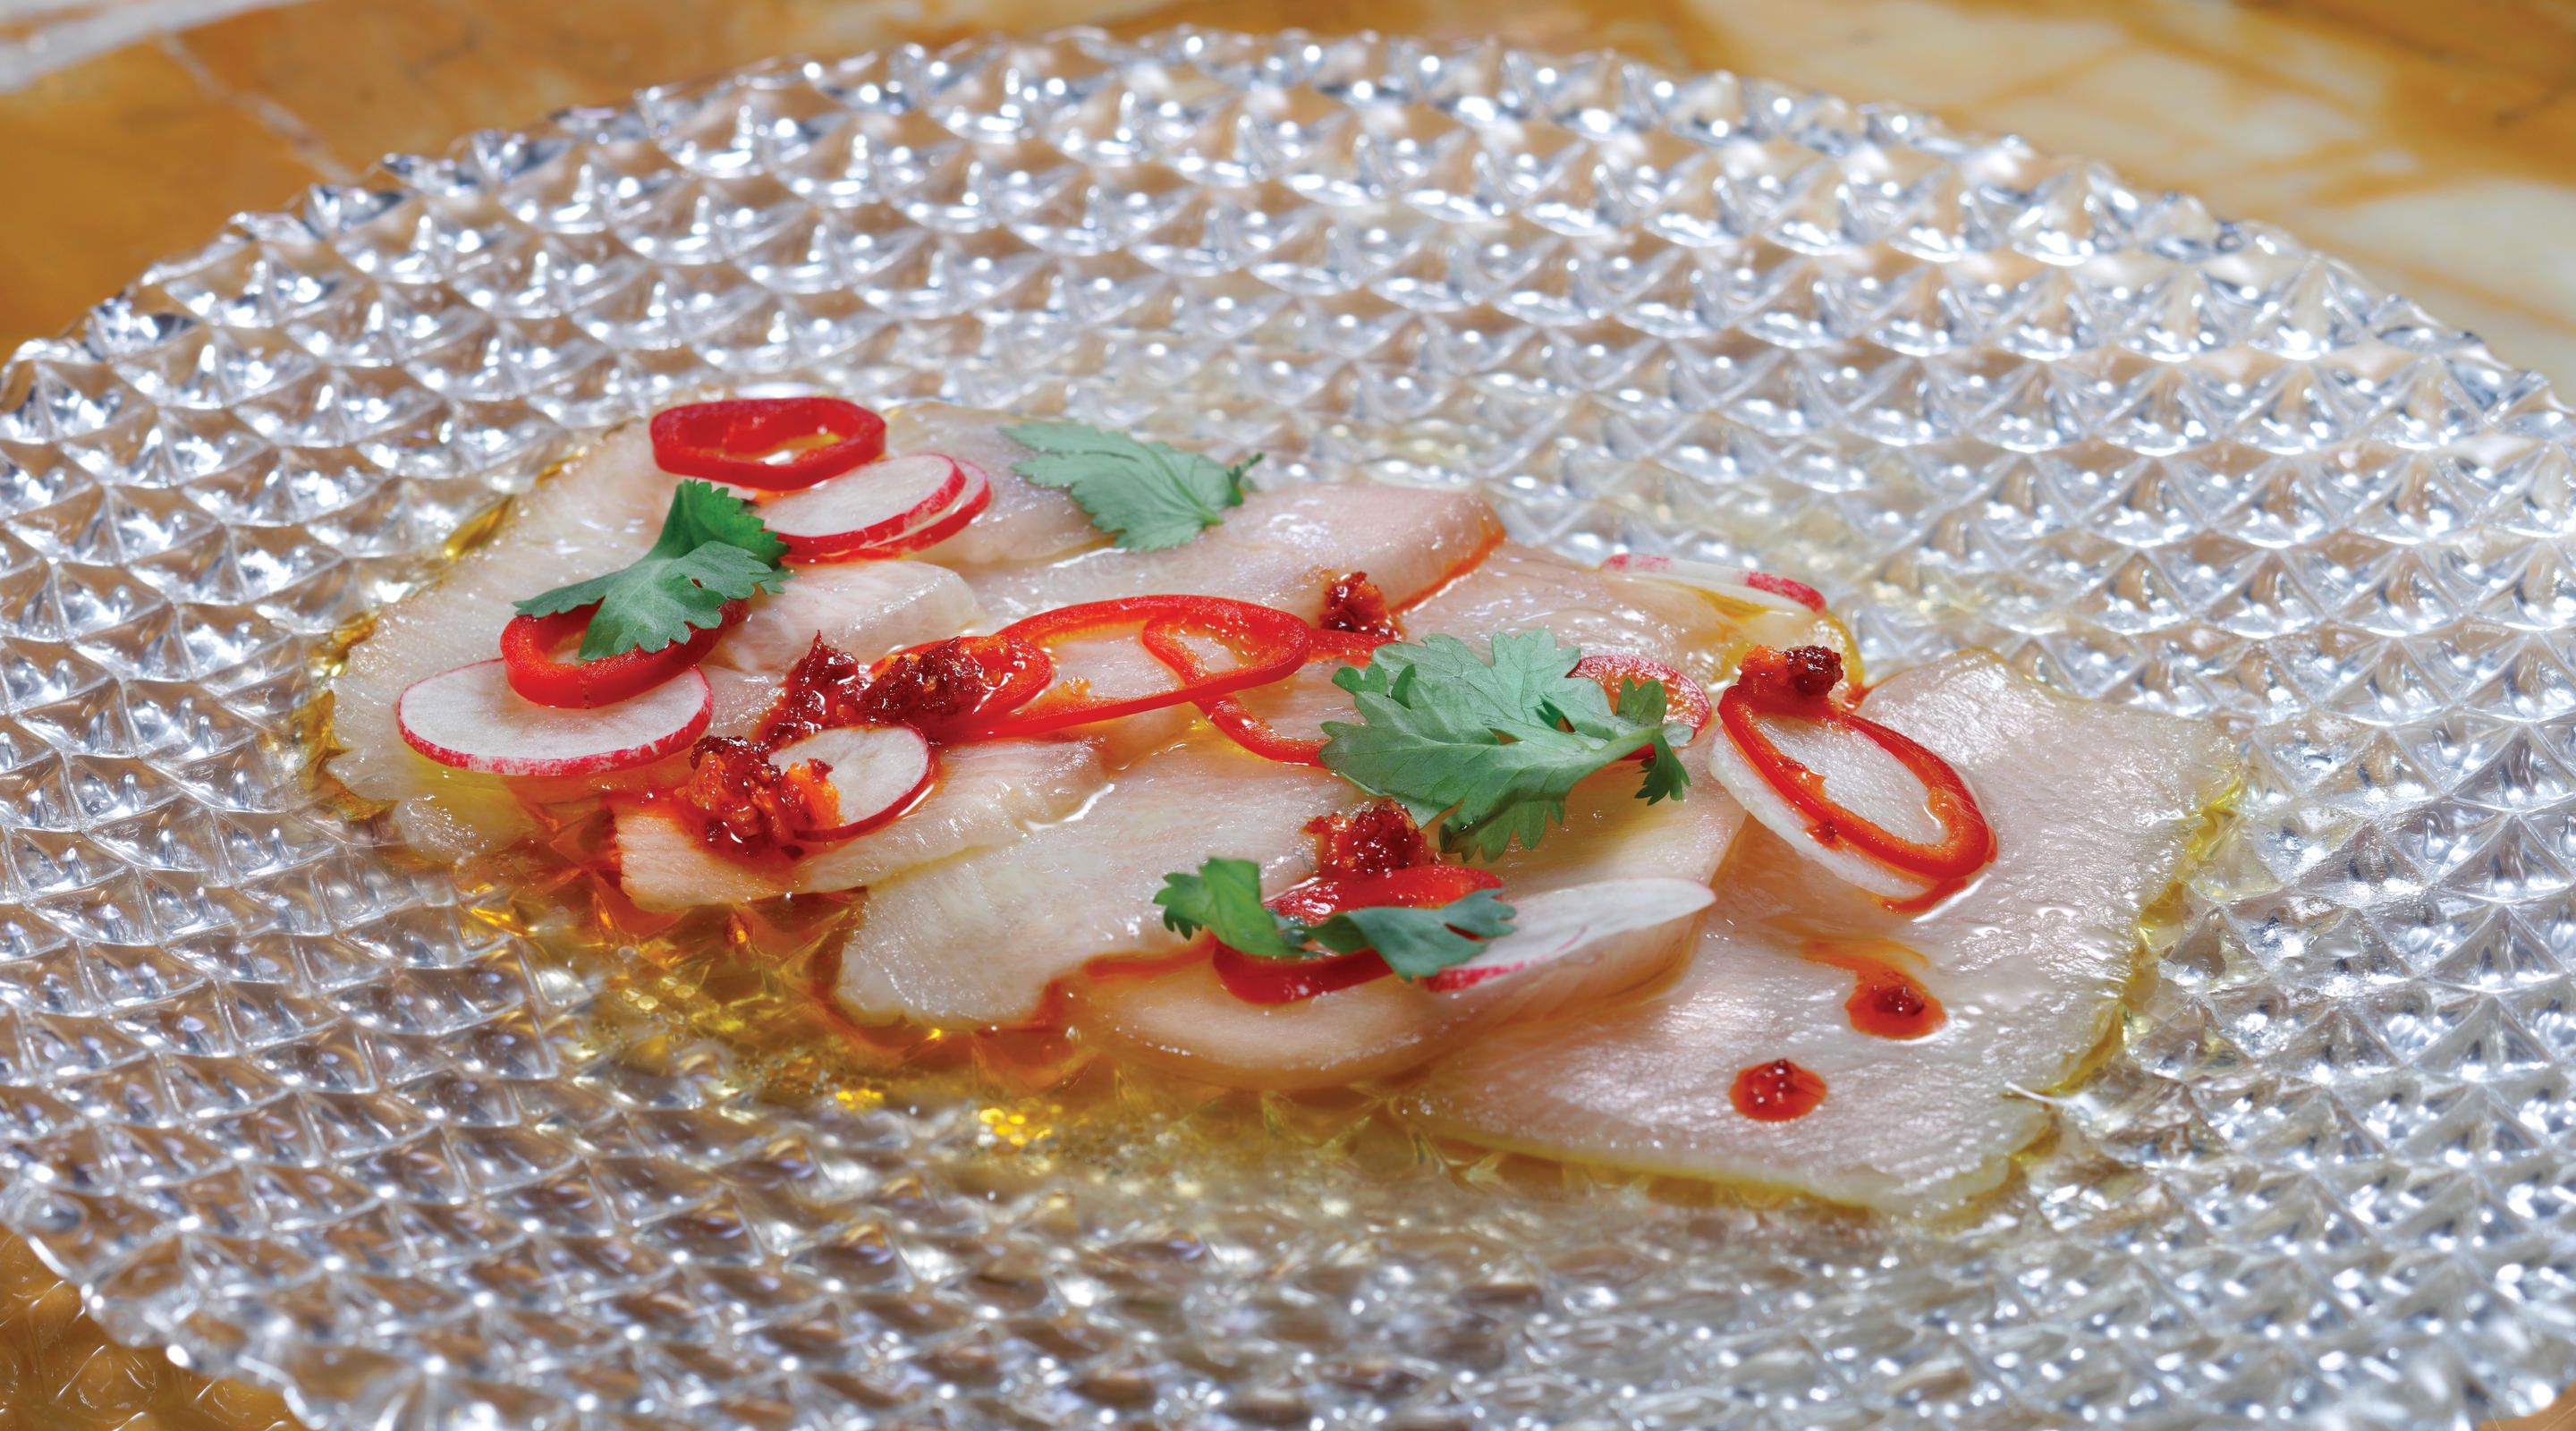 A hamachi dish with garnishes at Mayfair Supper Club.